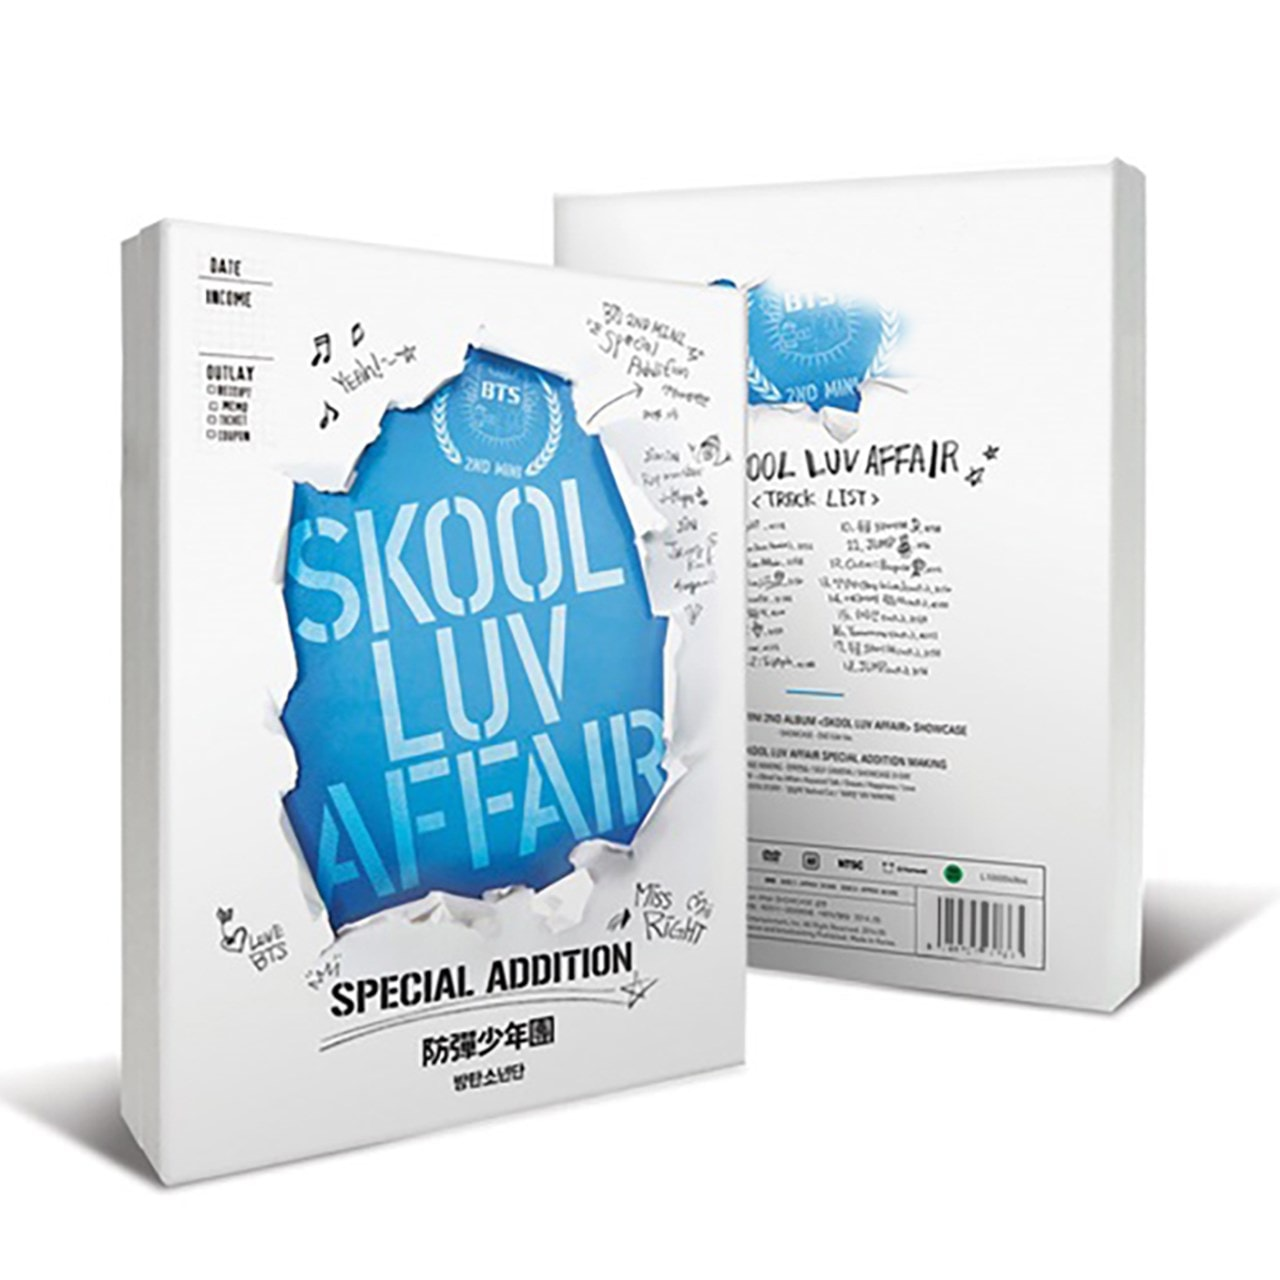 Skool Luv Affair - Special Addition - 3